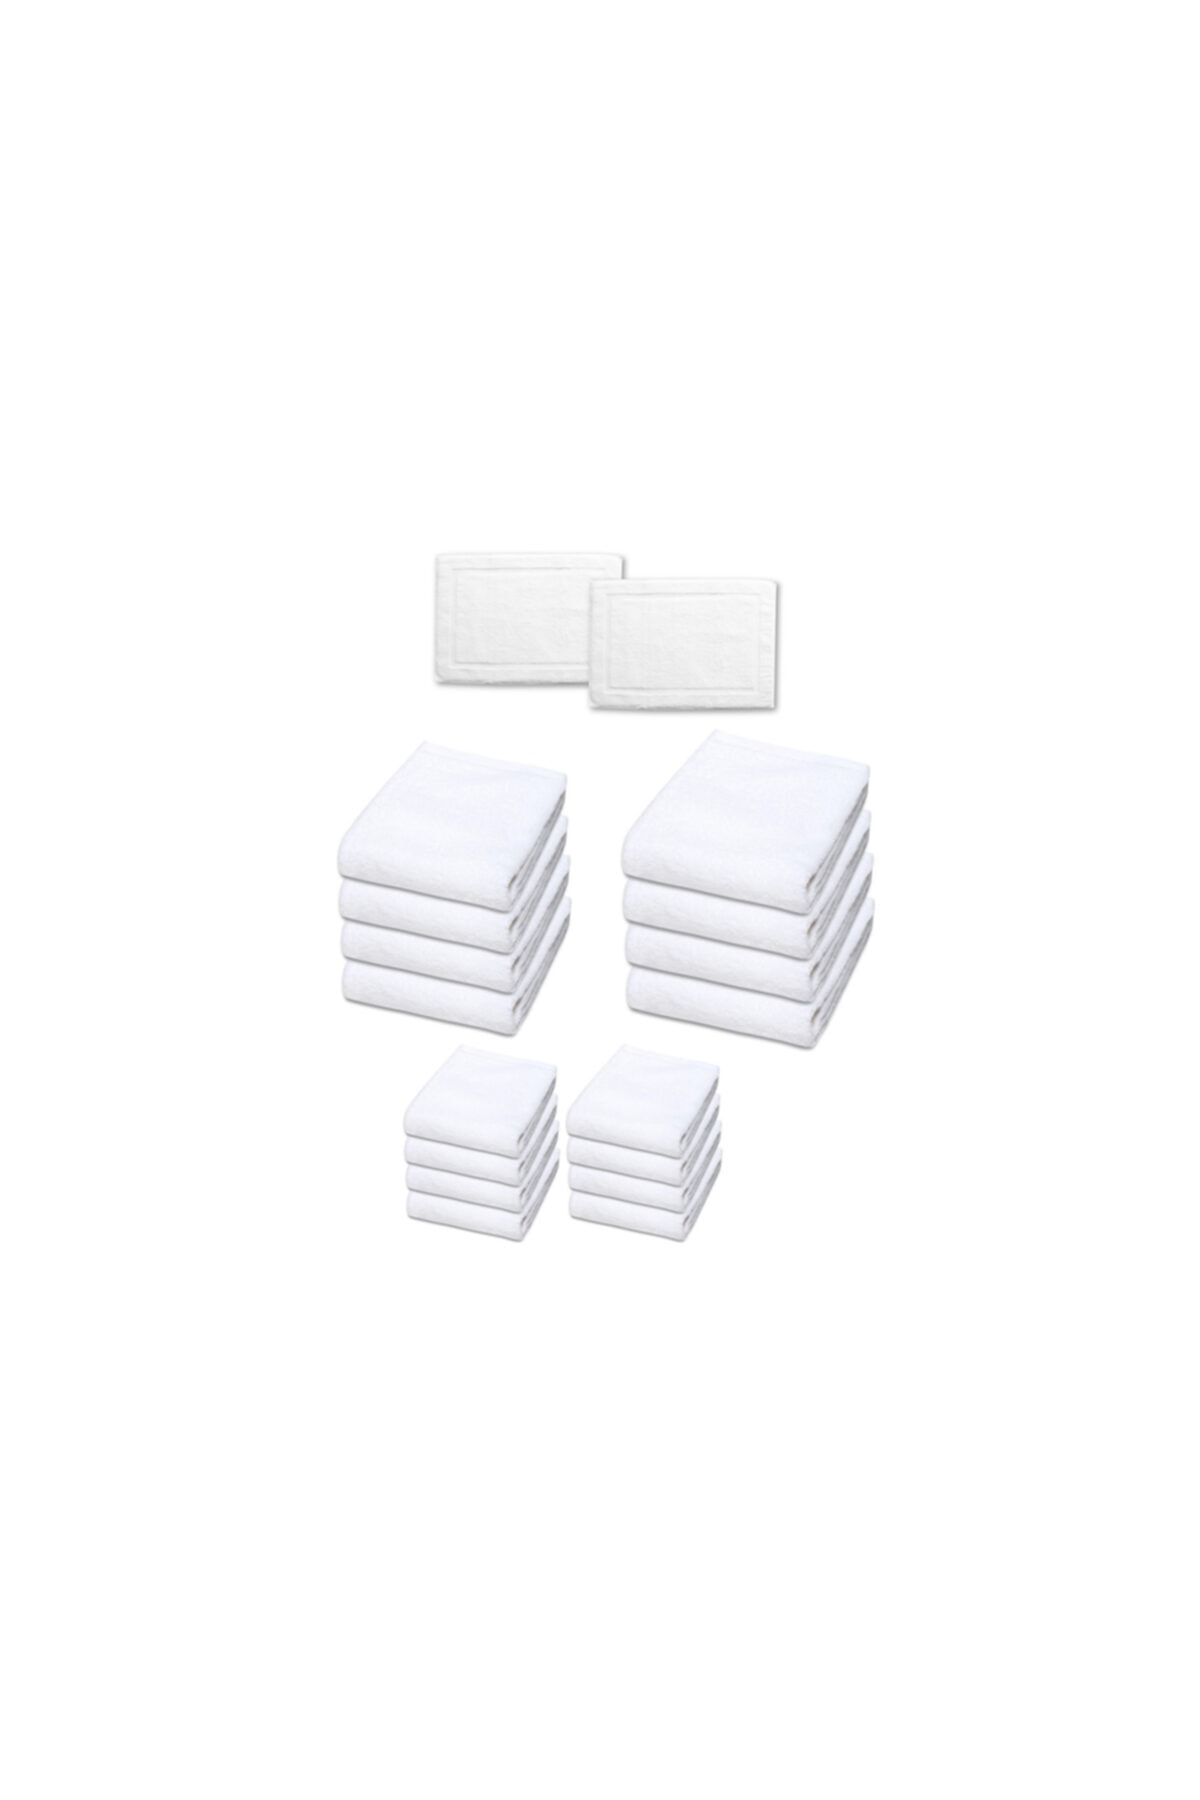 Cac - Textile - Towel Set